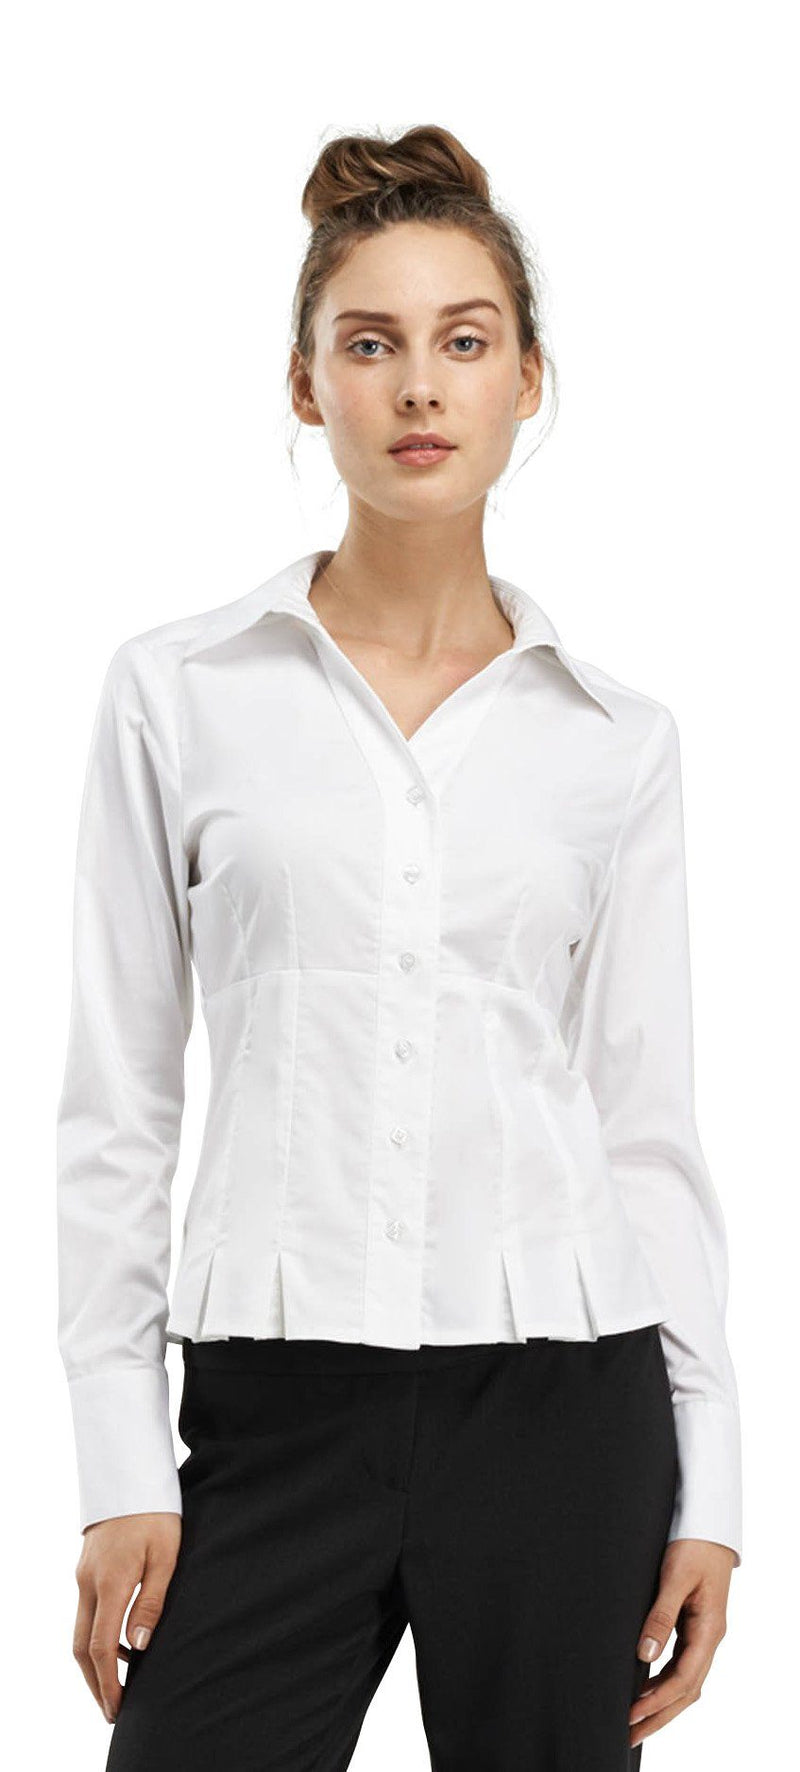 Women's Classic Dress Shirt